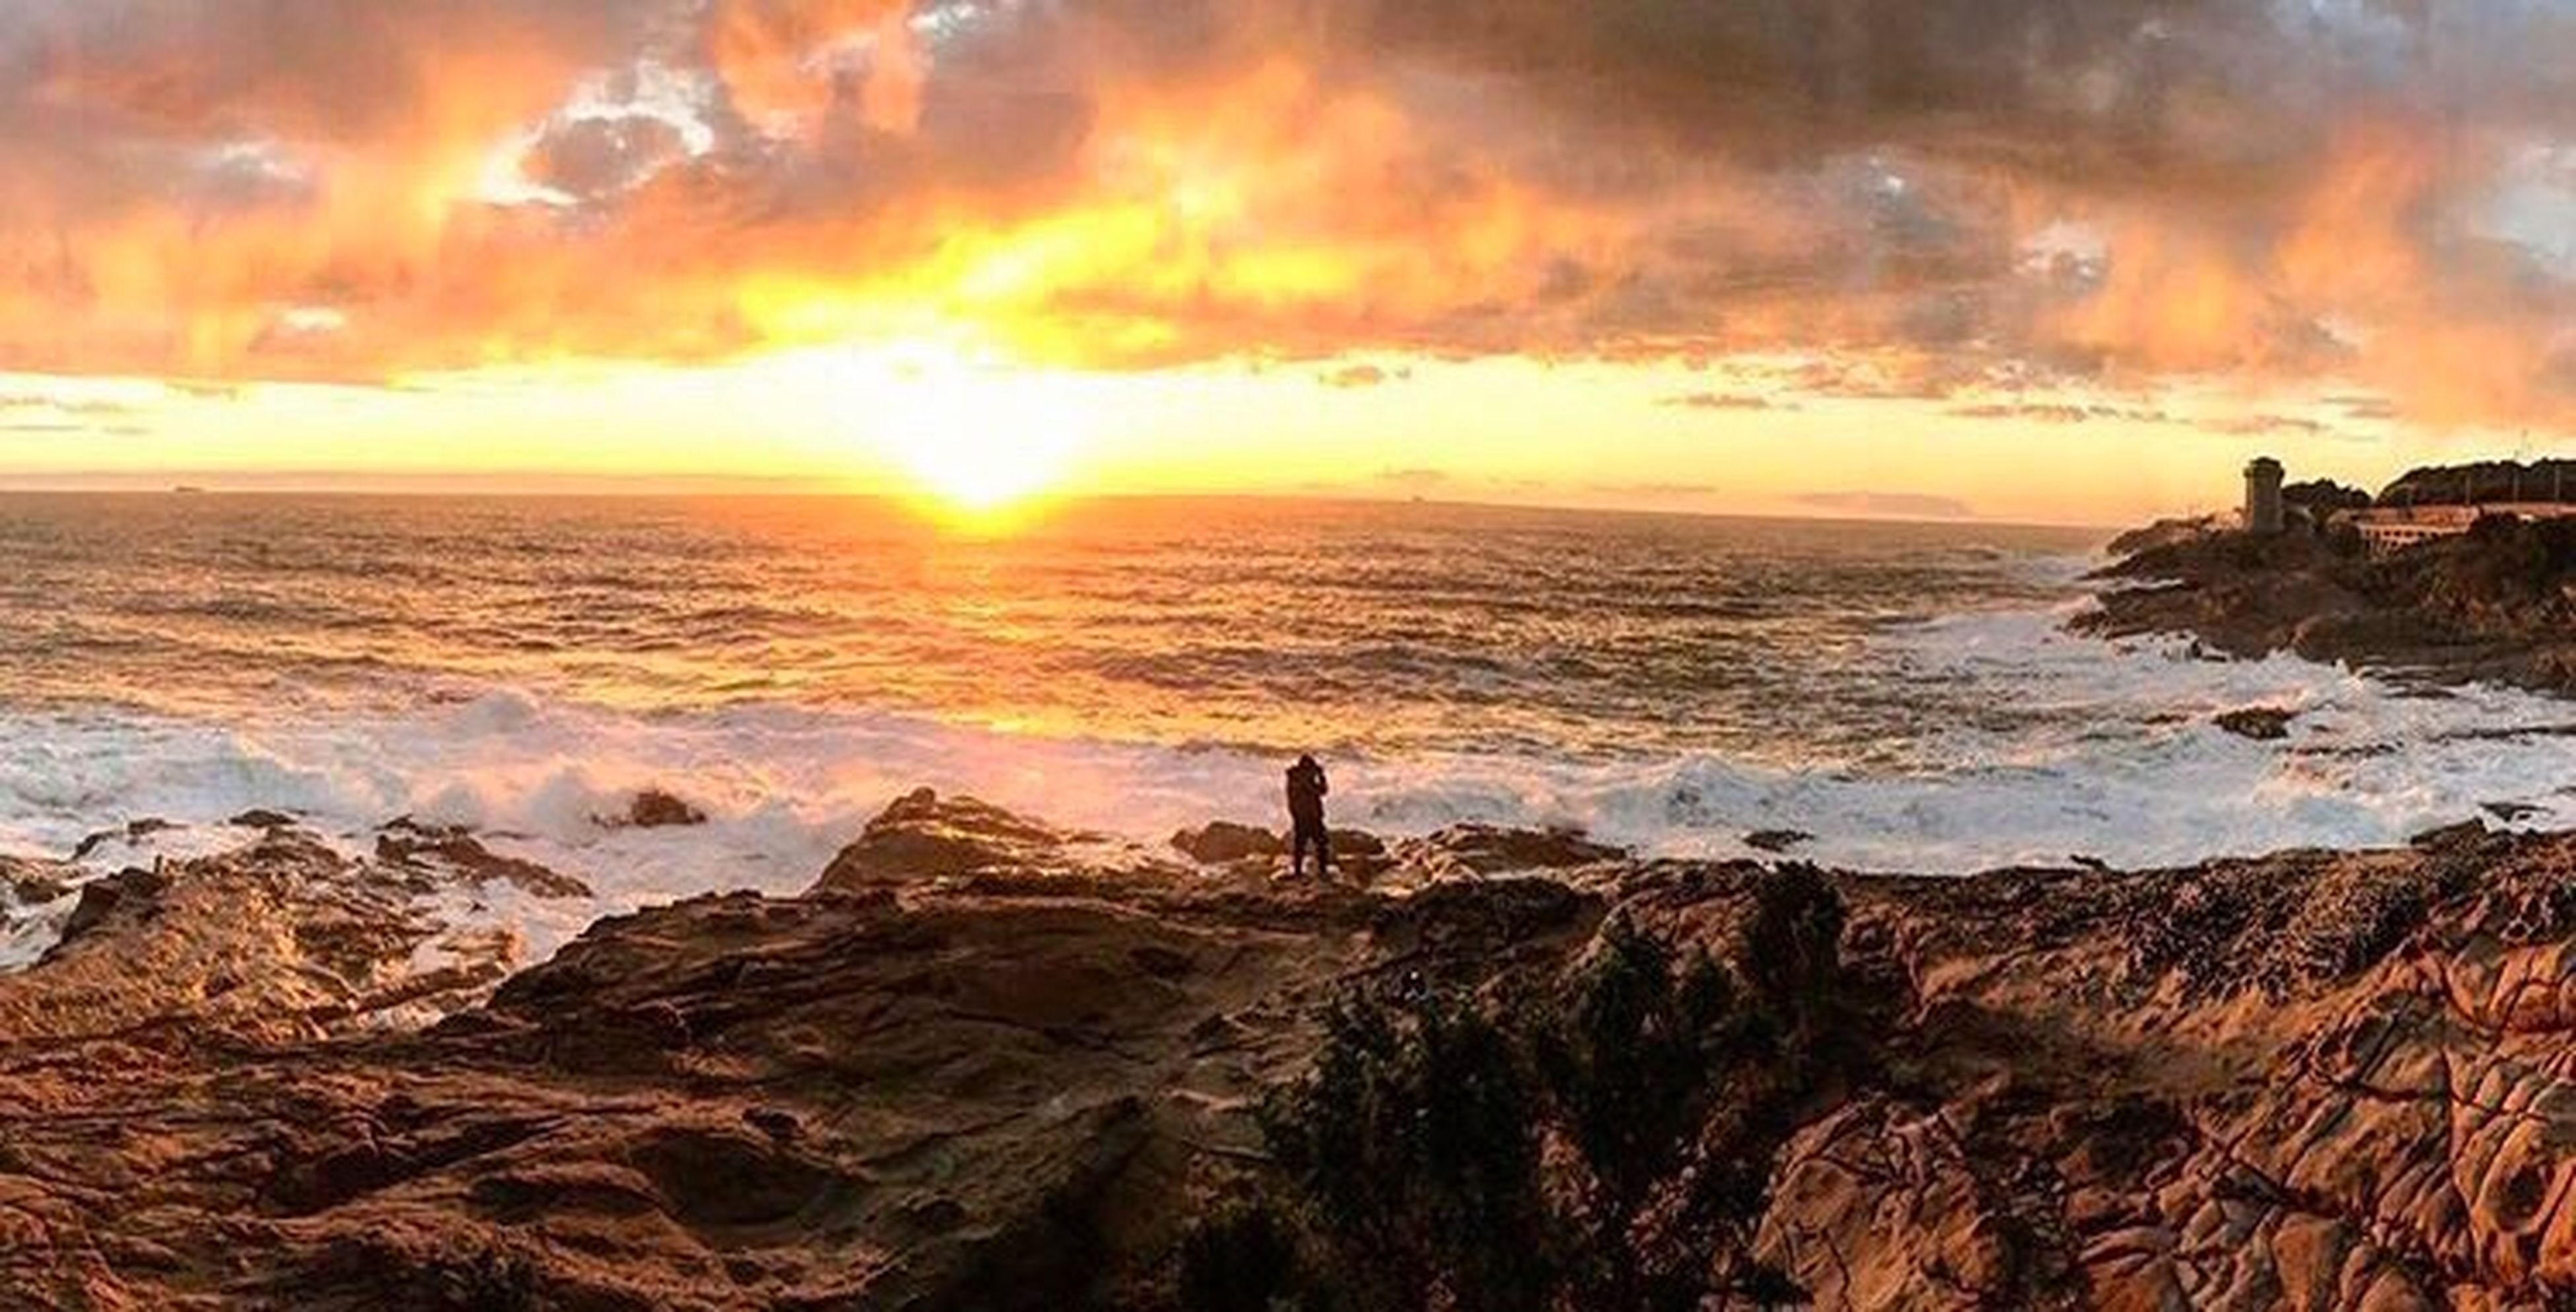 sunset, sea, beach, orange color, beauty in nature, horizon over water, dramatic sky, rock - object, nature, tranquility, scenics, outdoors, wave, romantic sky, vacations, no people, water, sunbeam, sun, sand, sky, cloud - sky, day